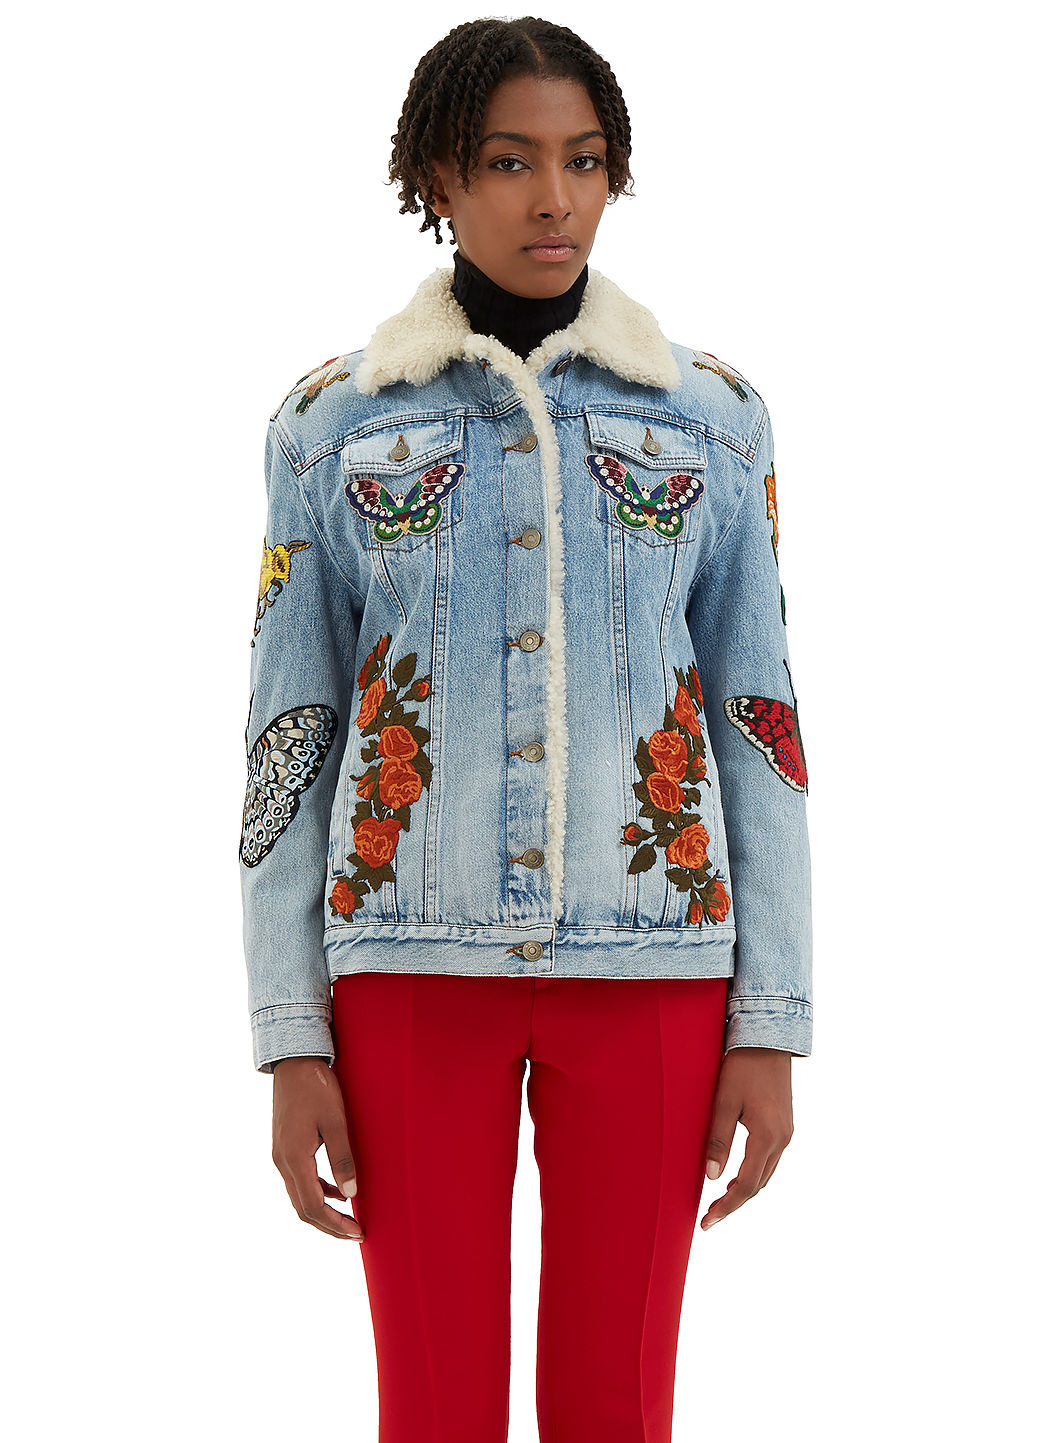 GUCCI WOMEN'S EMBROIDERED DENIM SHEARLING JACKET IN BLUE